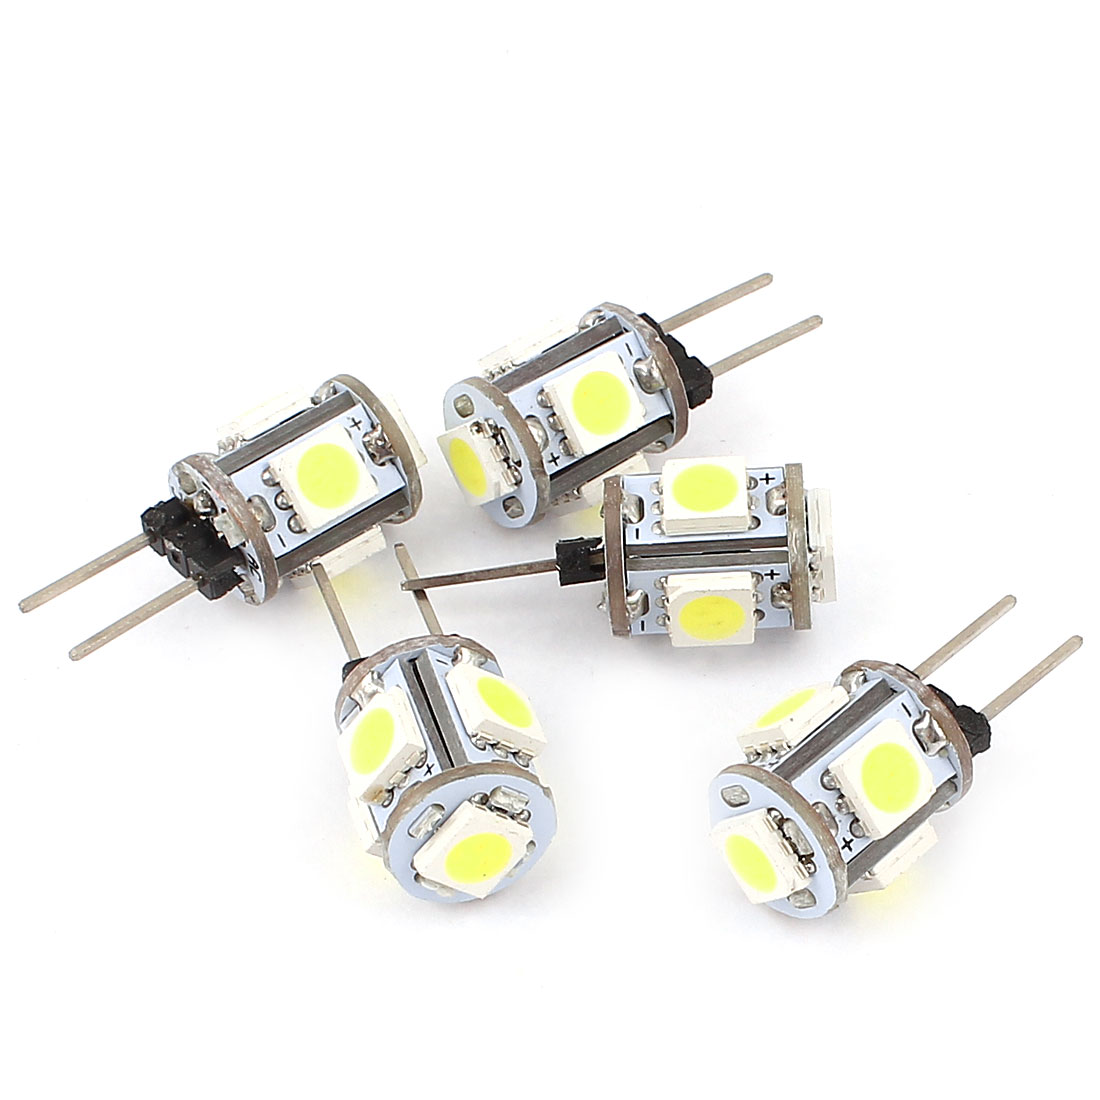 5 x 60-80LM 360 Degree G4 5050 SMD 5 LED Light Bulb Lamp White